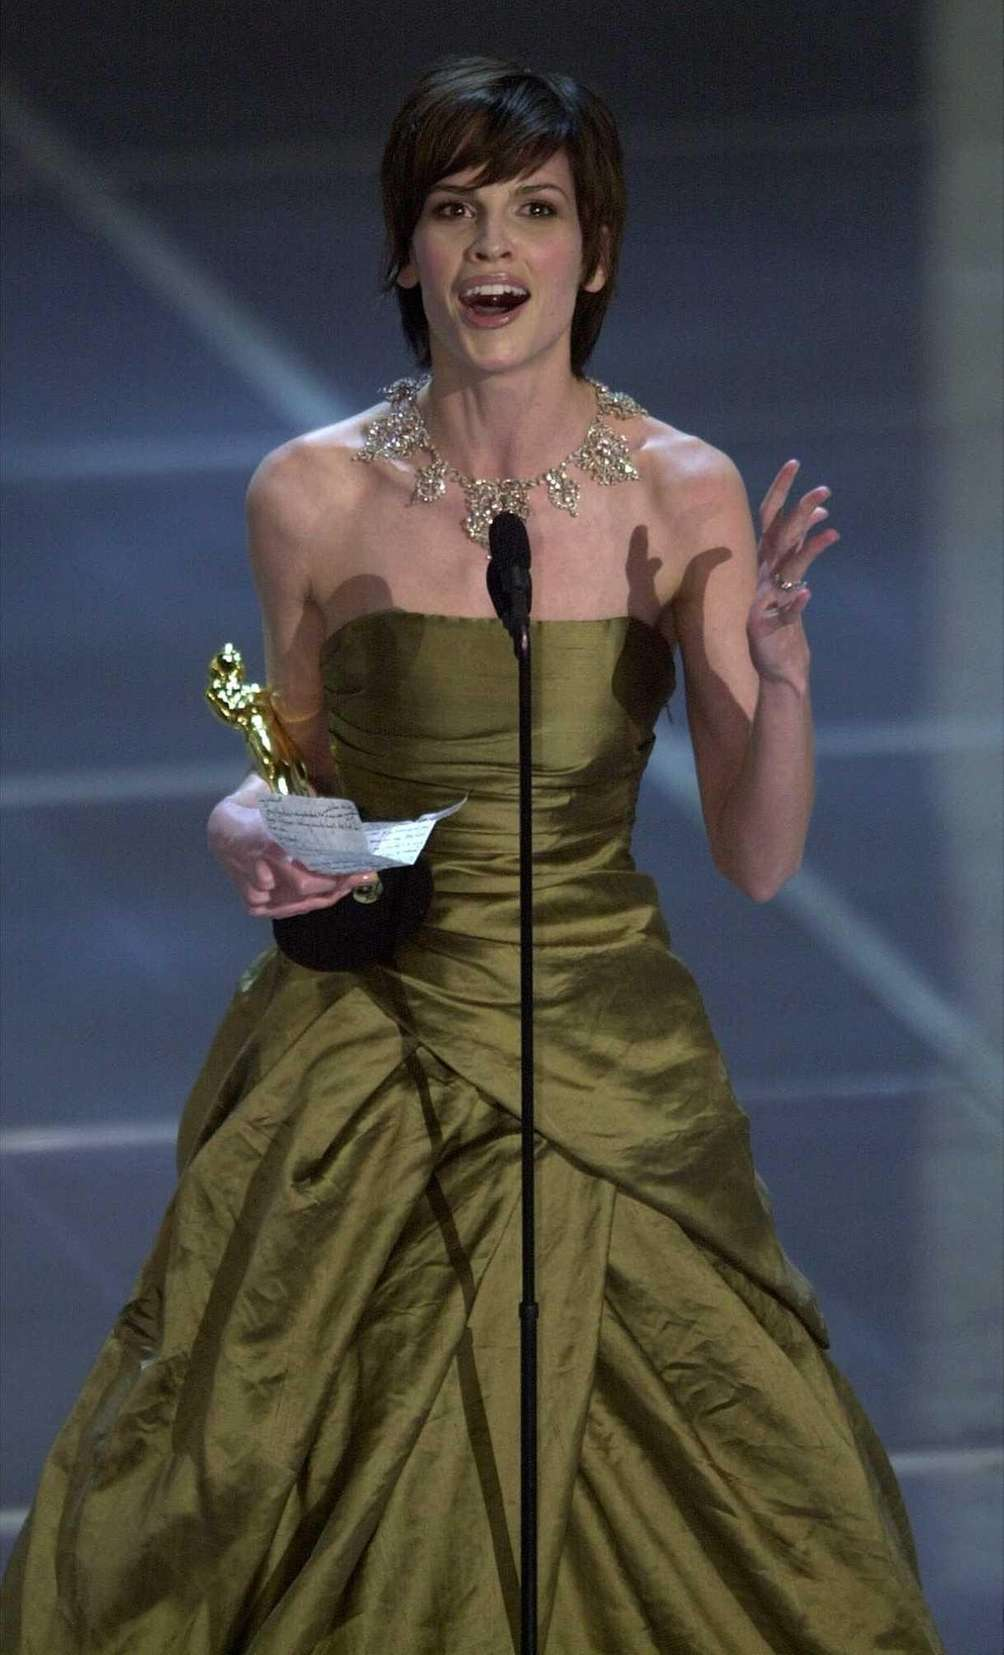 Actor Hilary Swank, accepting the 2000 Academy Award